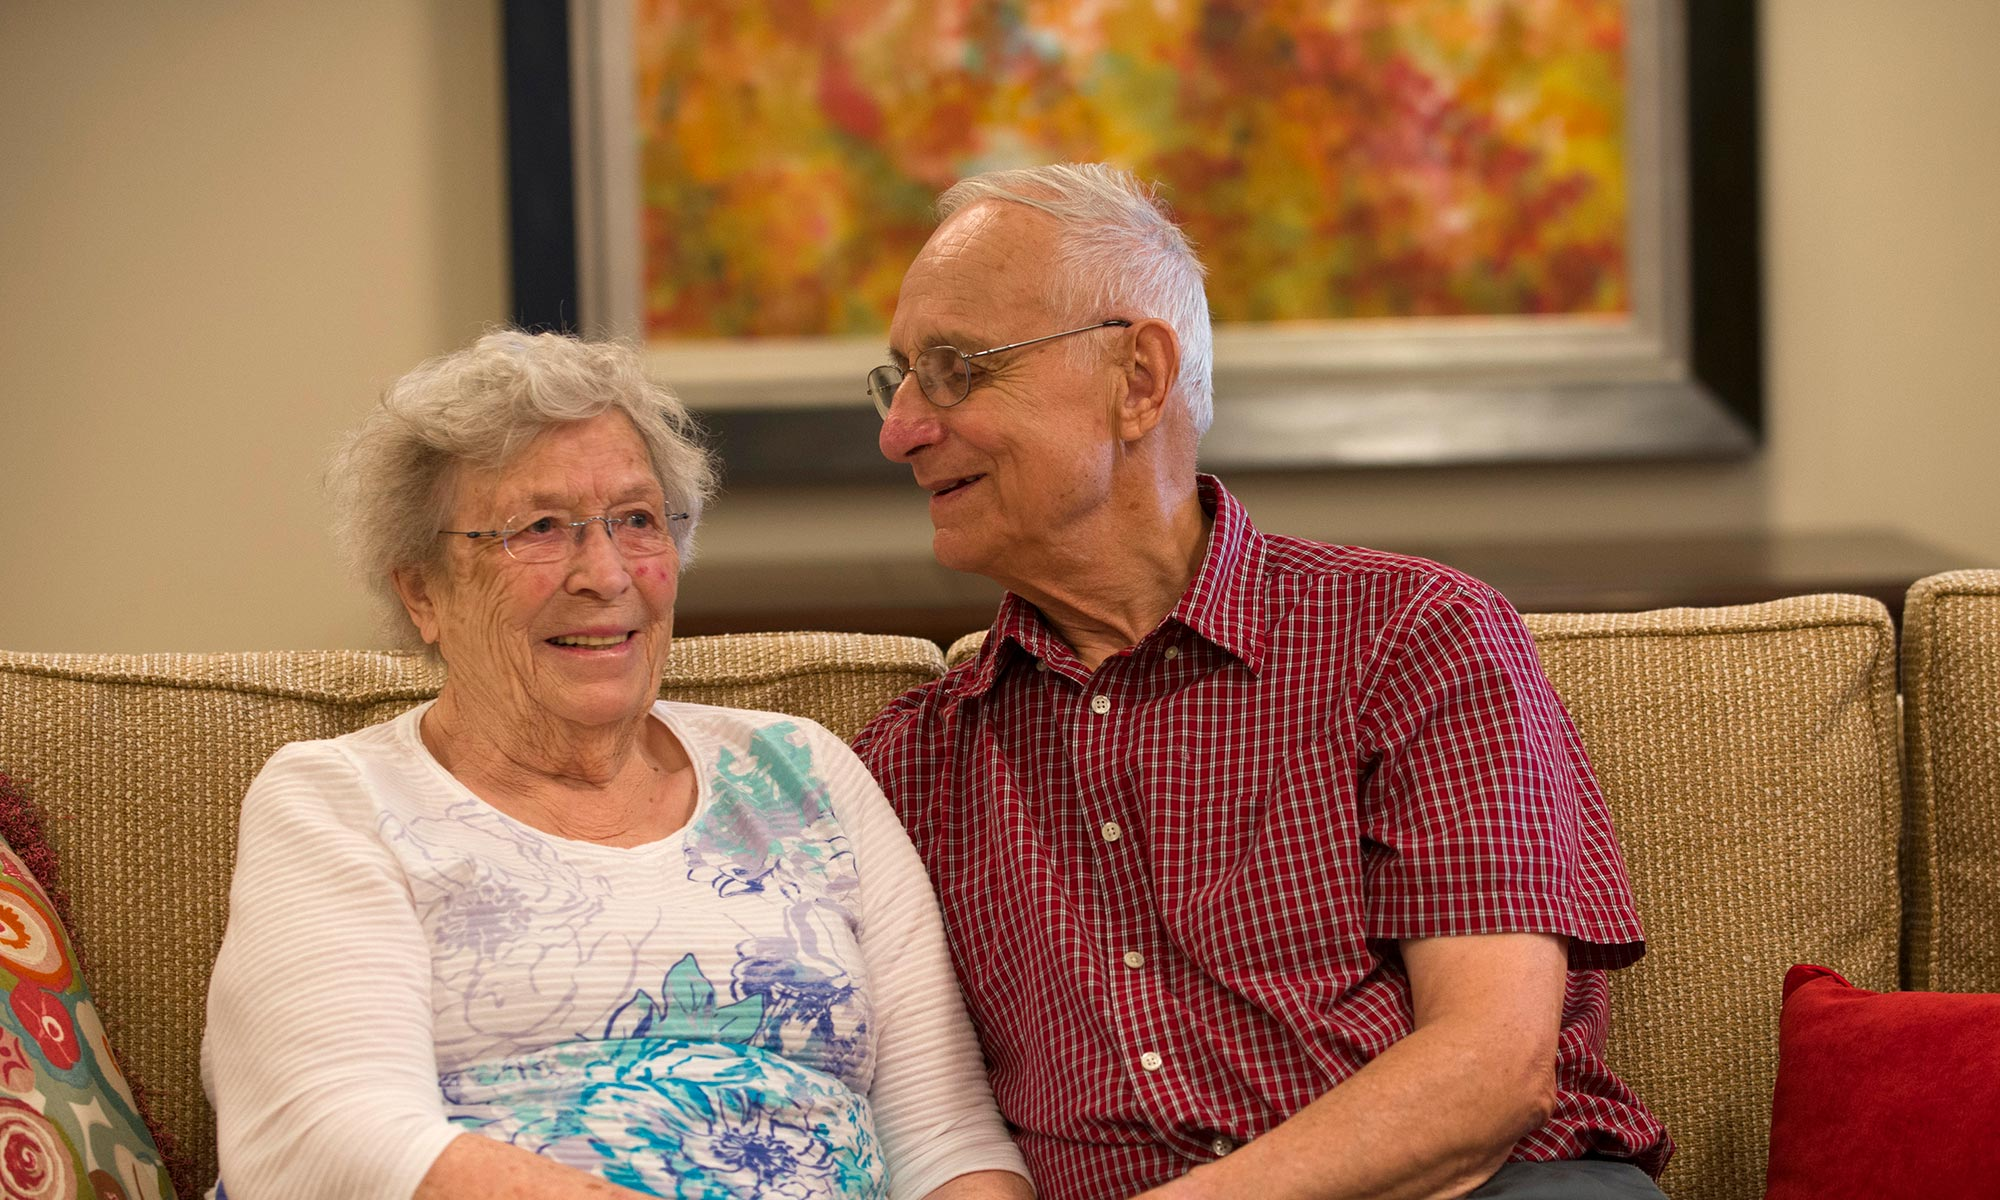 Contact Moments Manor Orleans for more information about senior living in Orleans, ON.